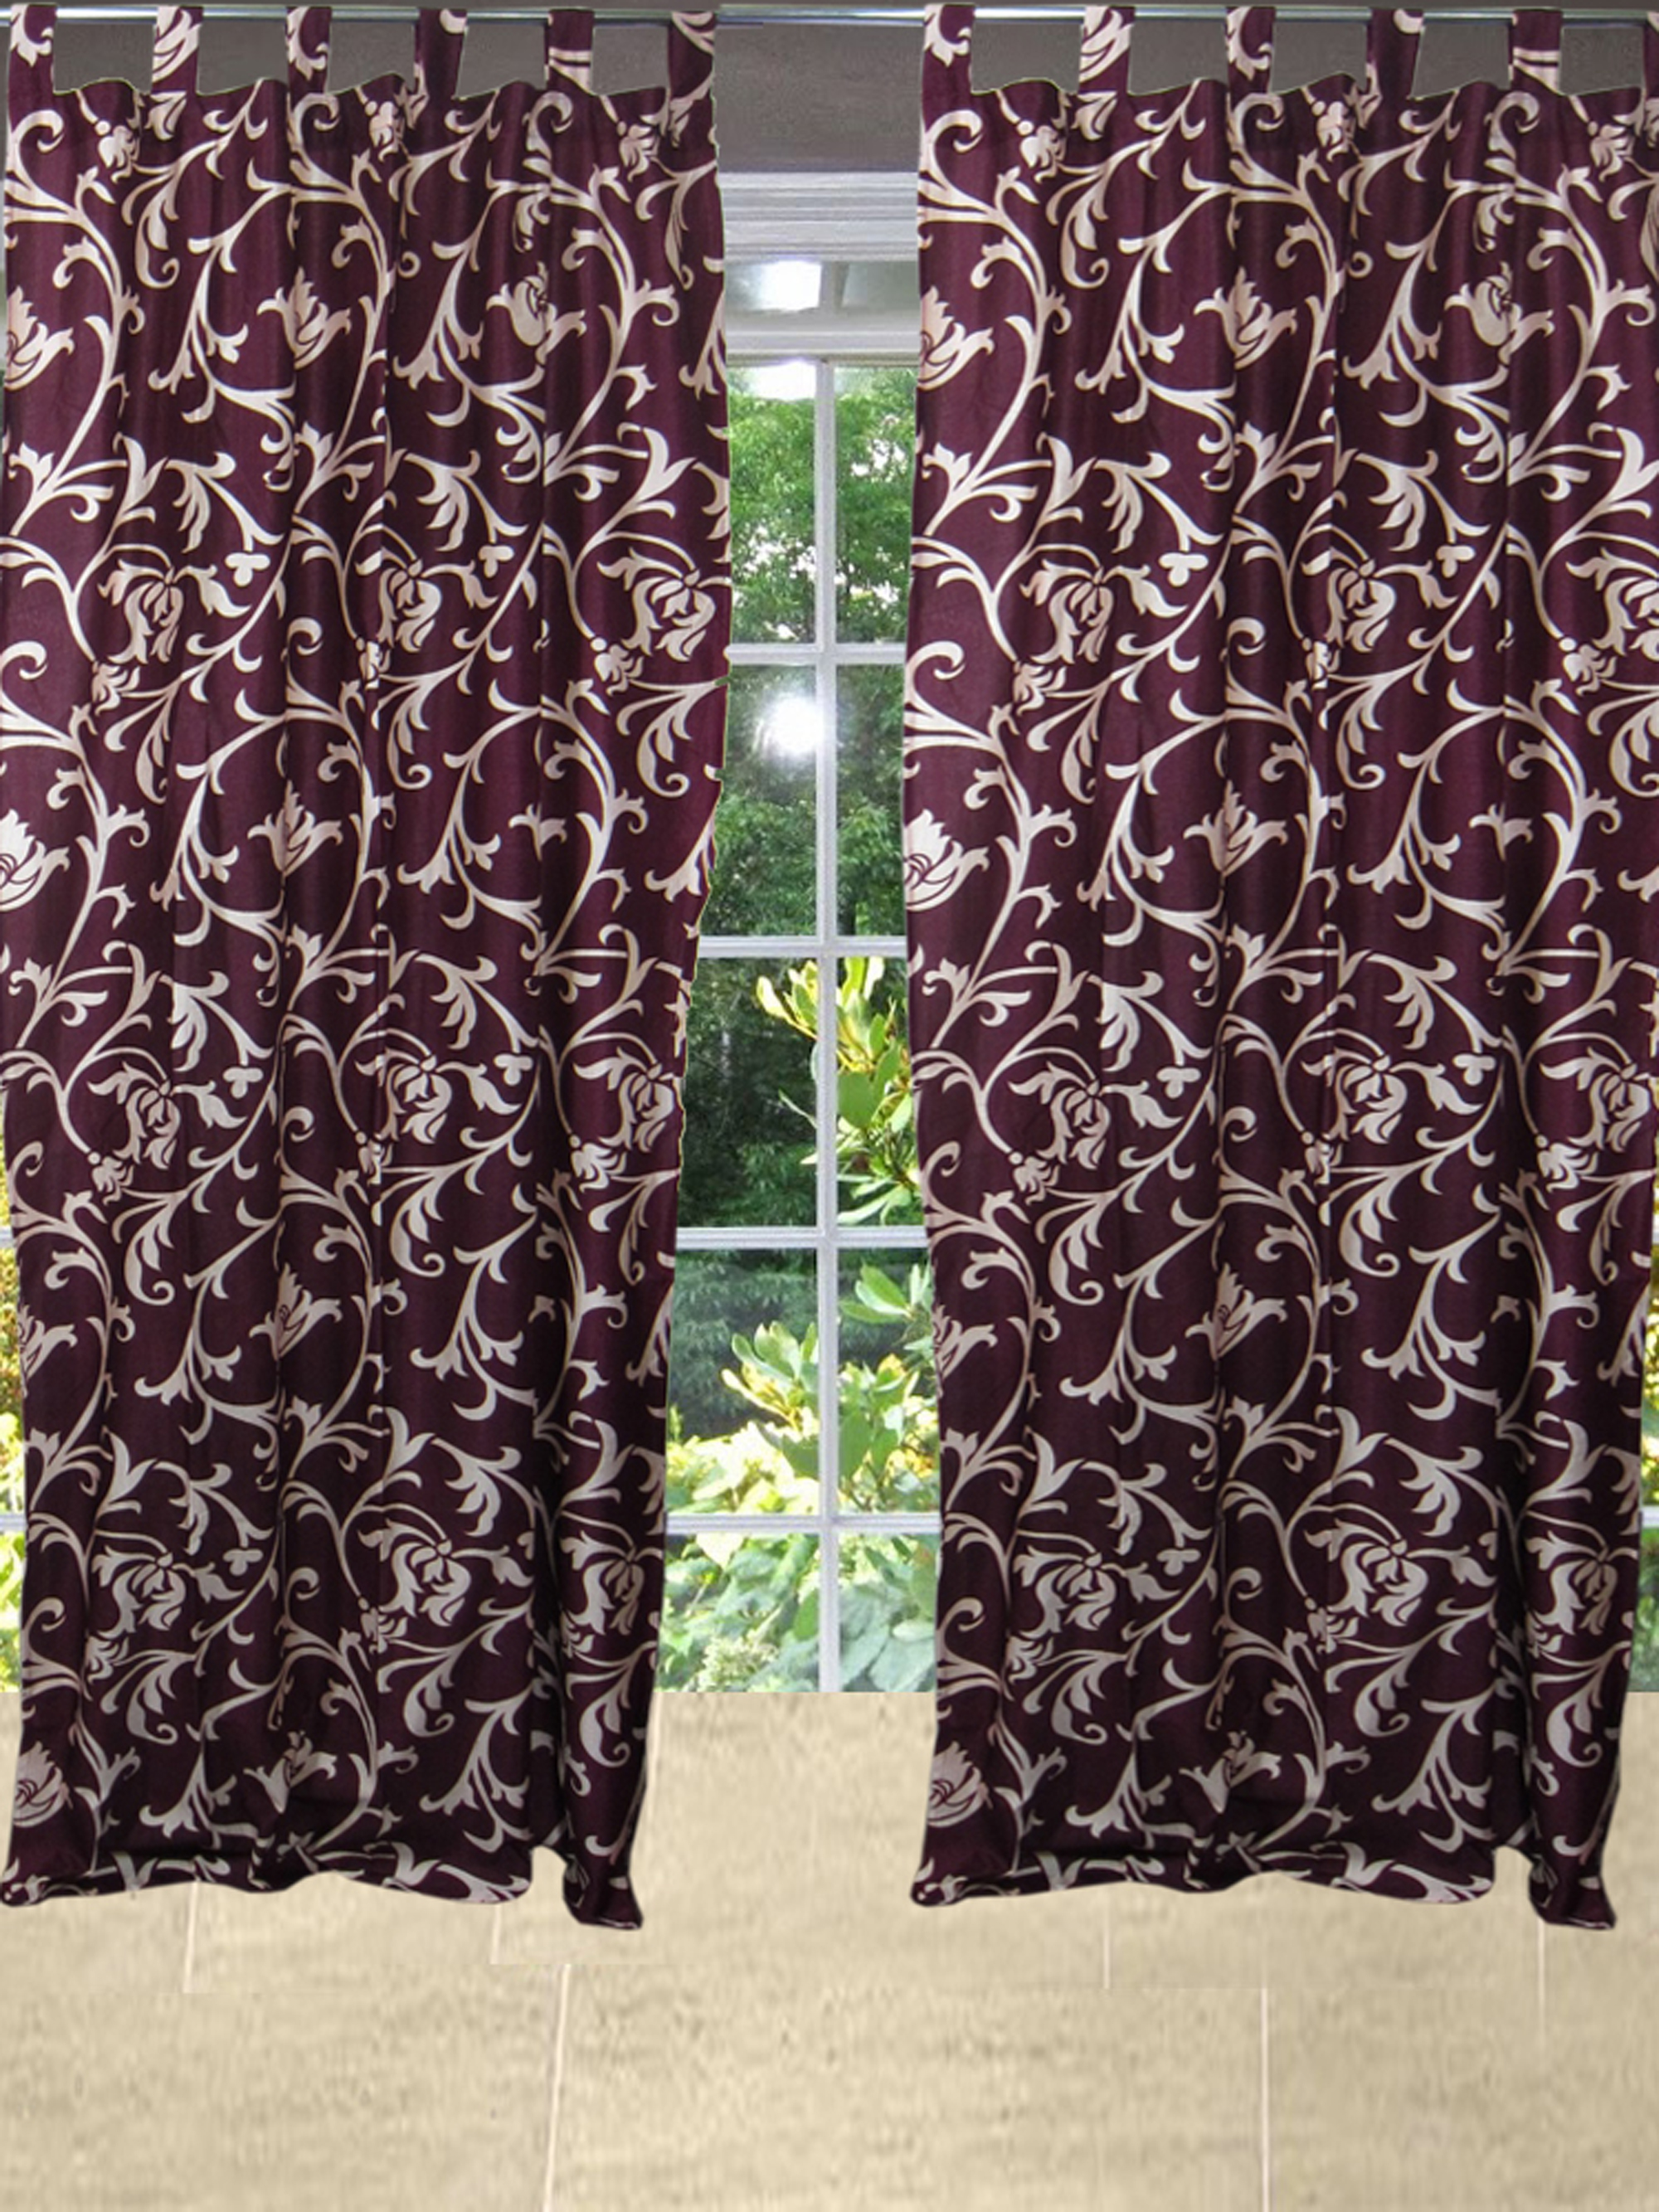 Mogul Printed Curtain Panels Maroon Window Drapes For Home Decoration (84x48)